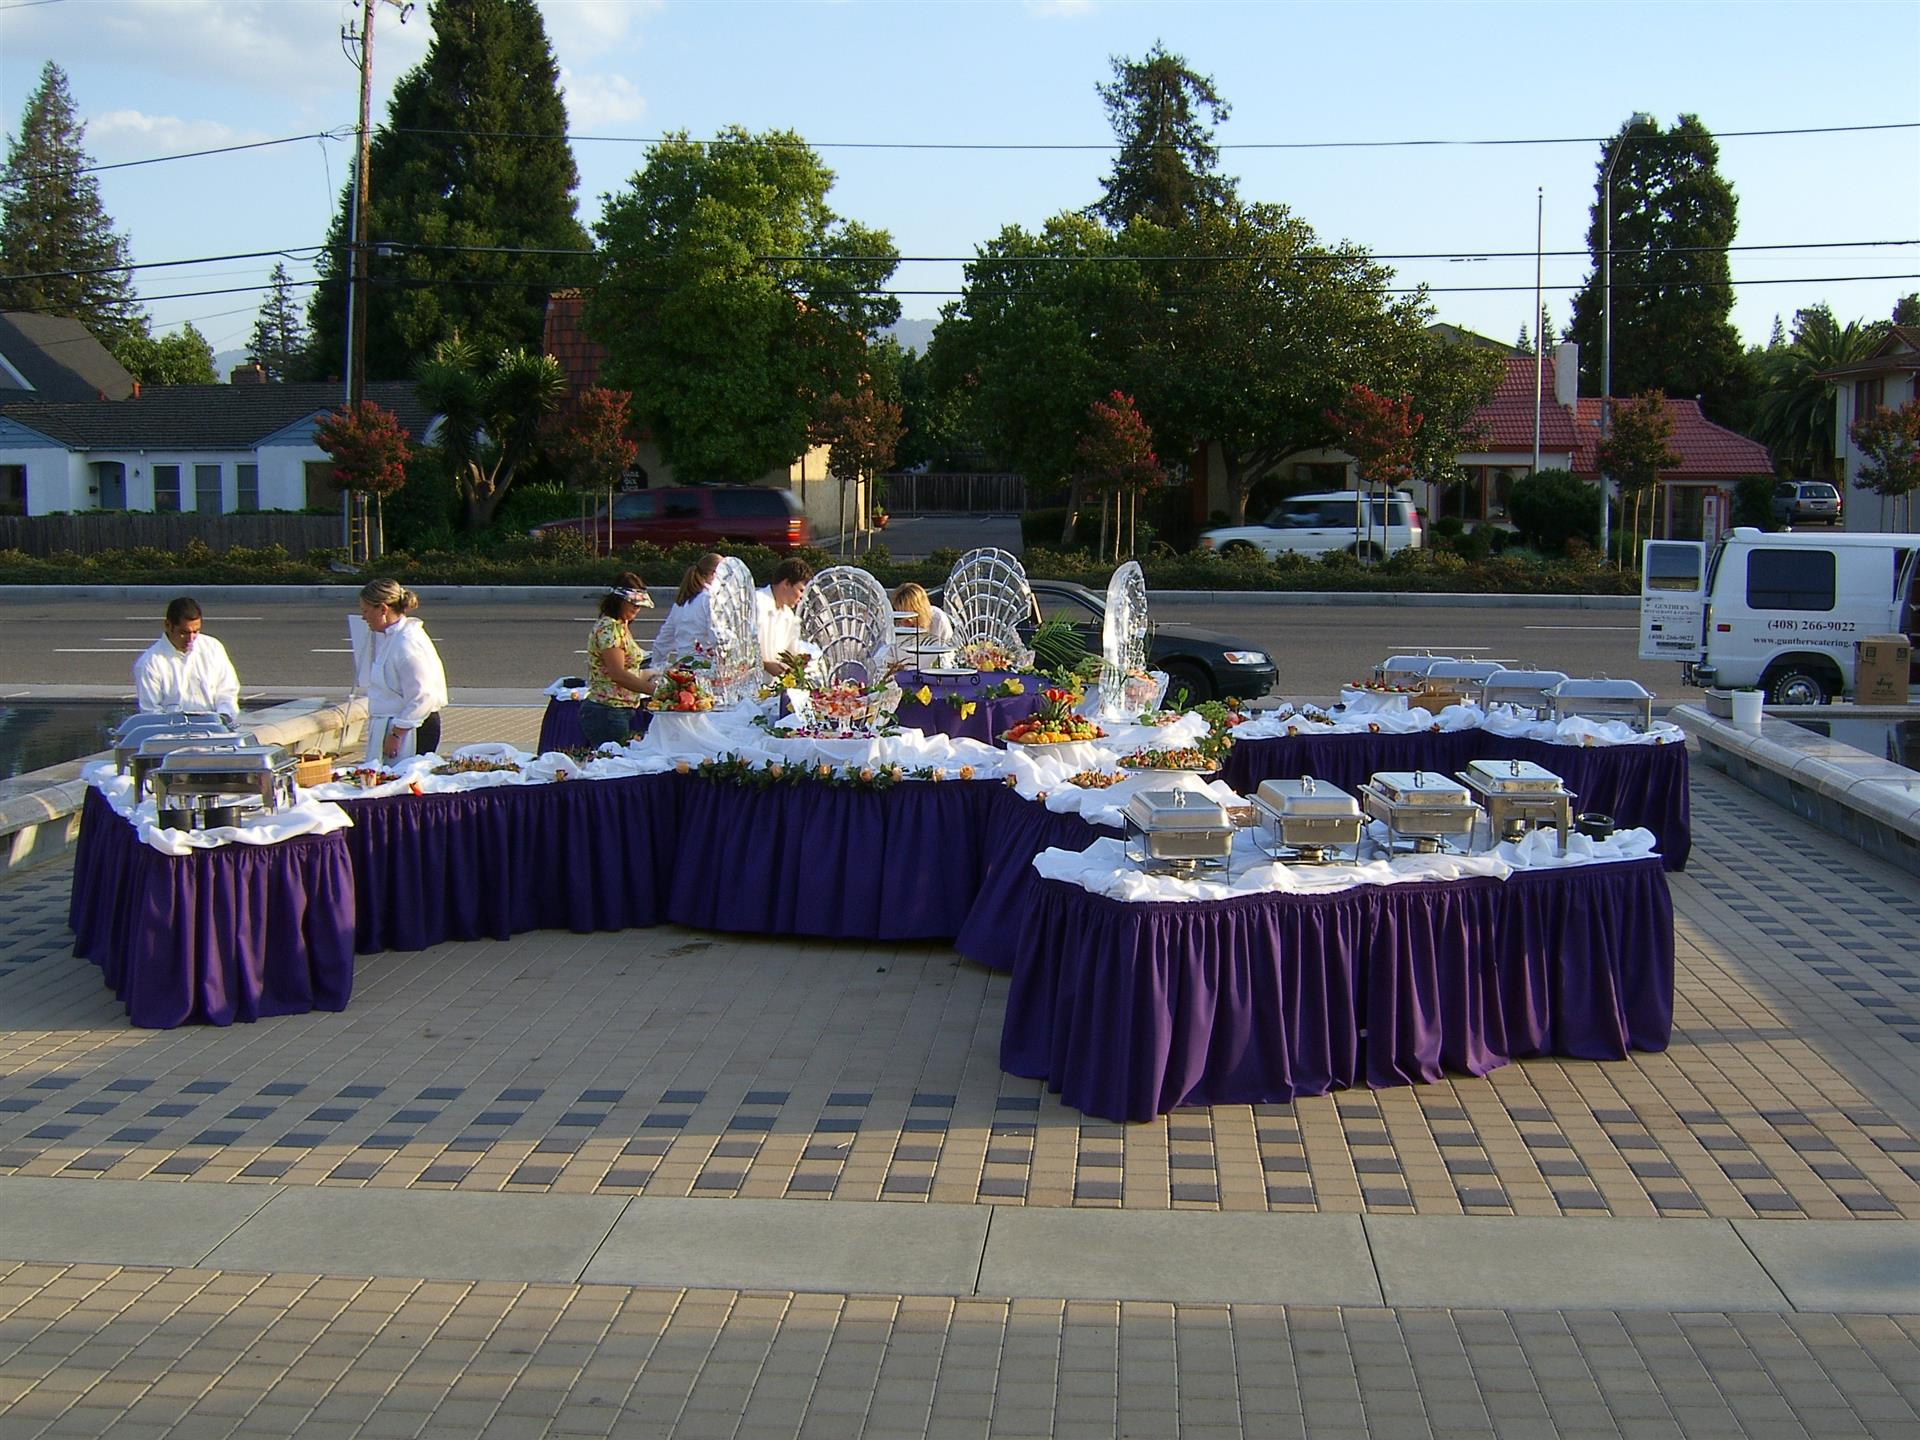 catering sternos on tables, catering staff outdoors at event